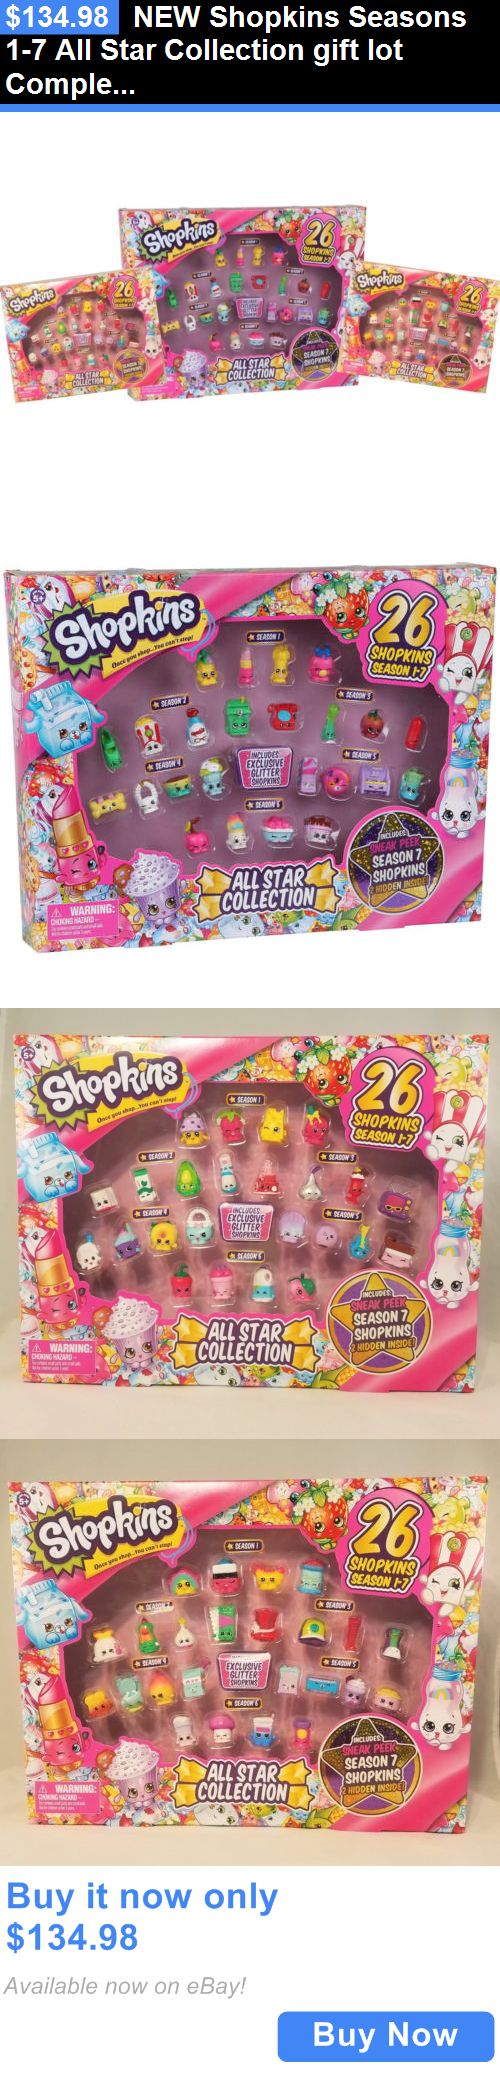 Toys And Games: New Shopkins Seasons 1-7 All Star Collection Gift Lot Complete Set 1 2 3 4 5 6 7 BUY IT NOW ONLY: $134.98